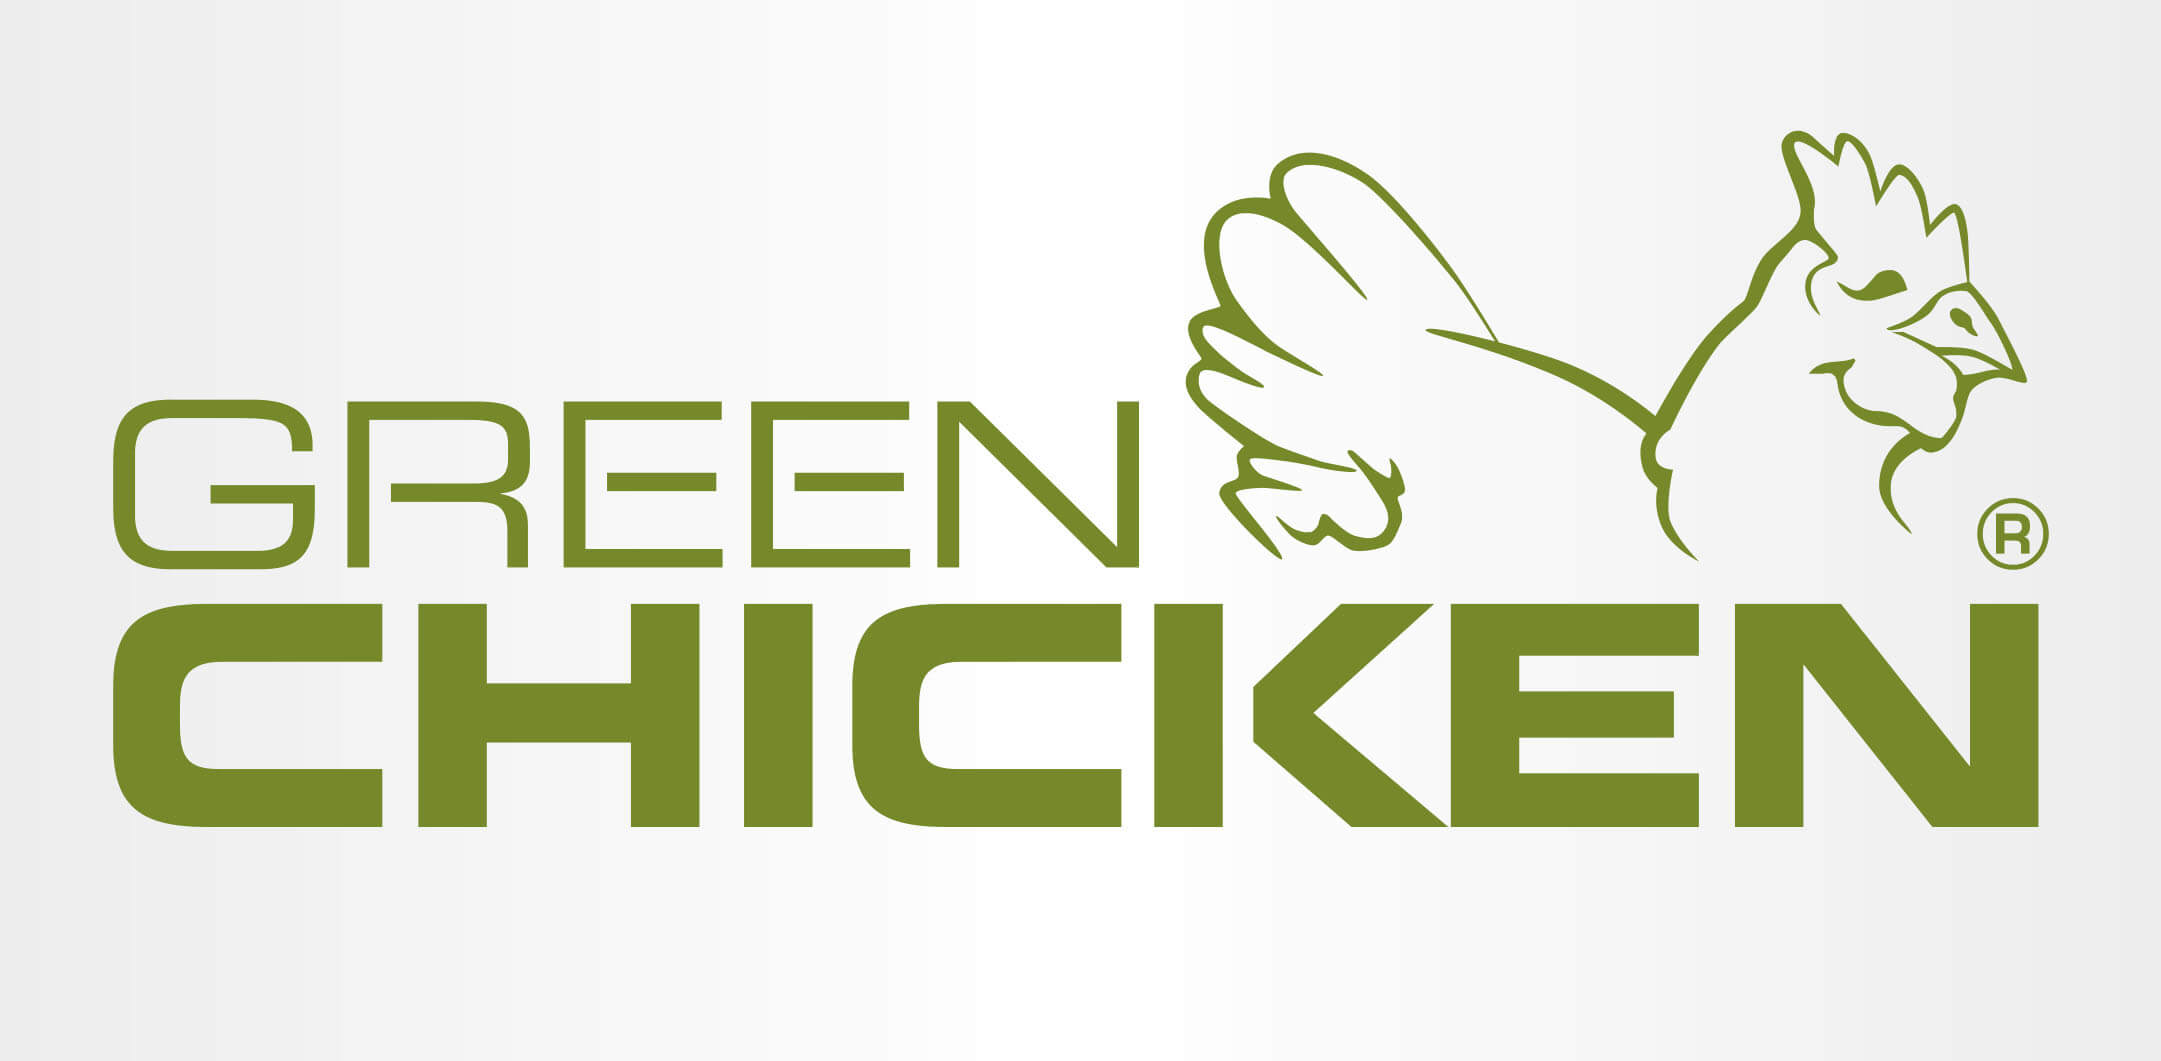 Greenpork-06-CHICKEN